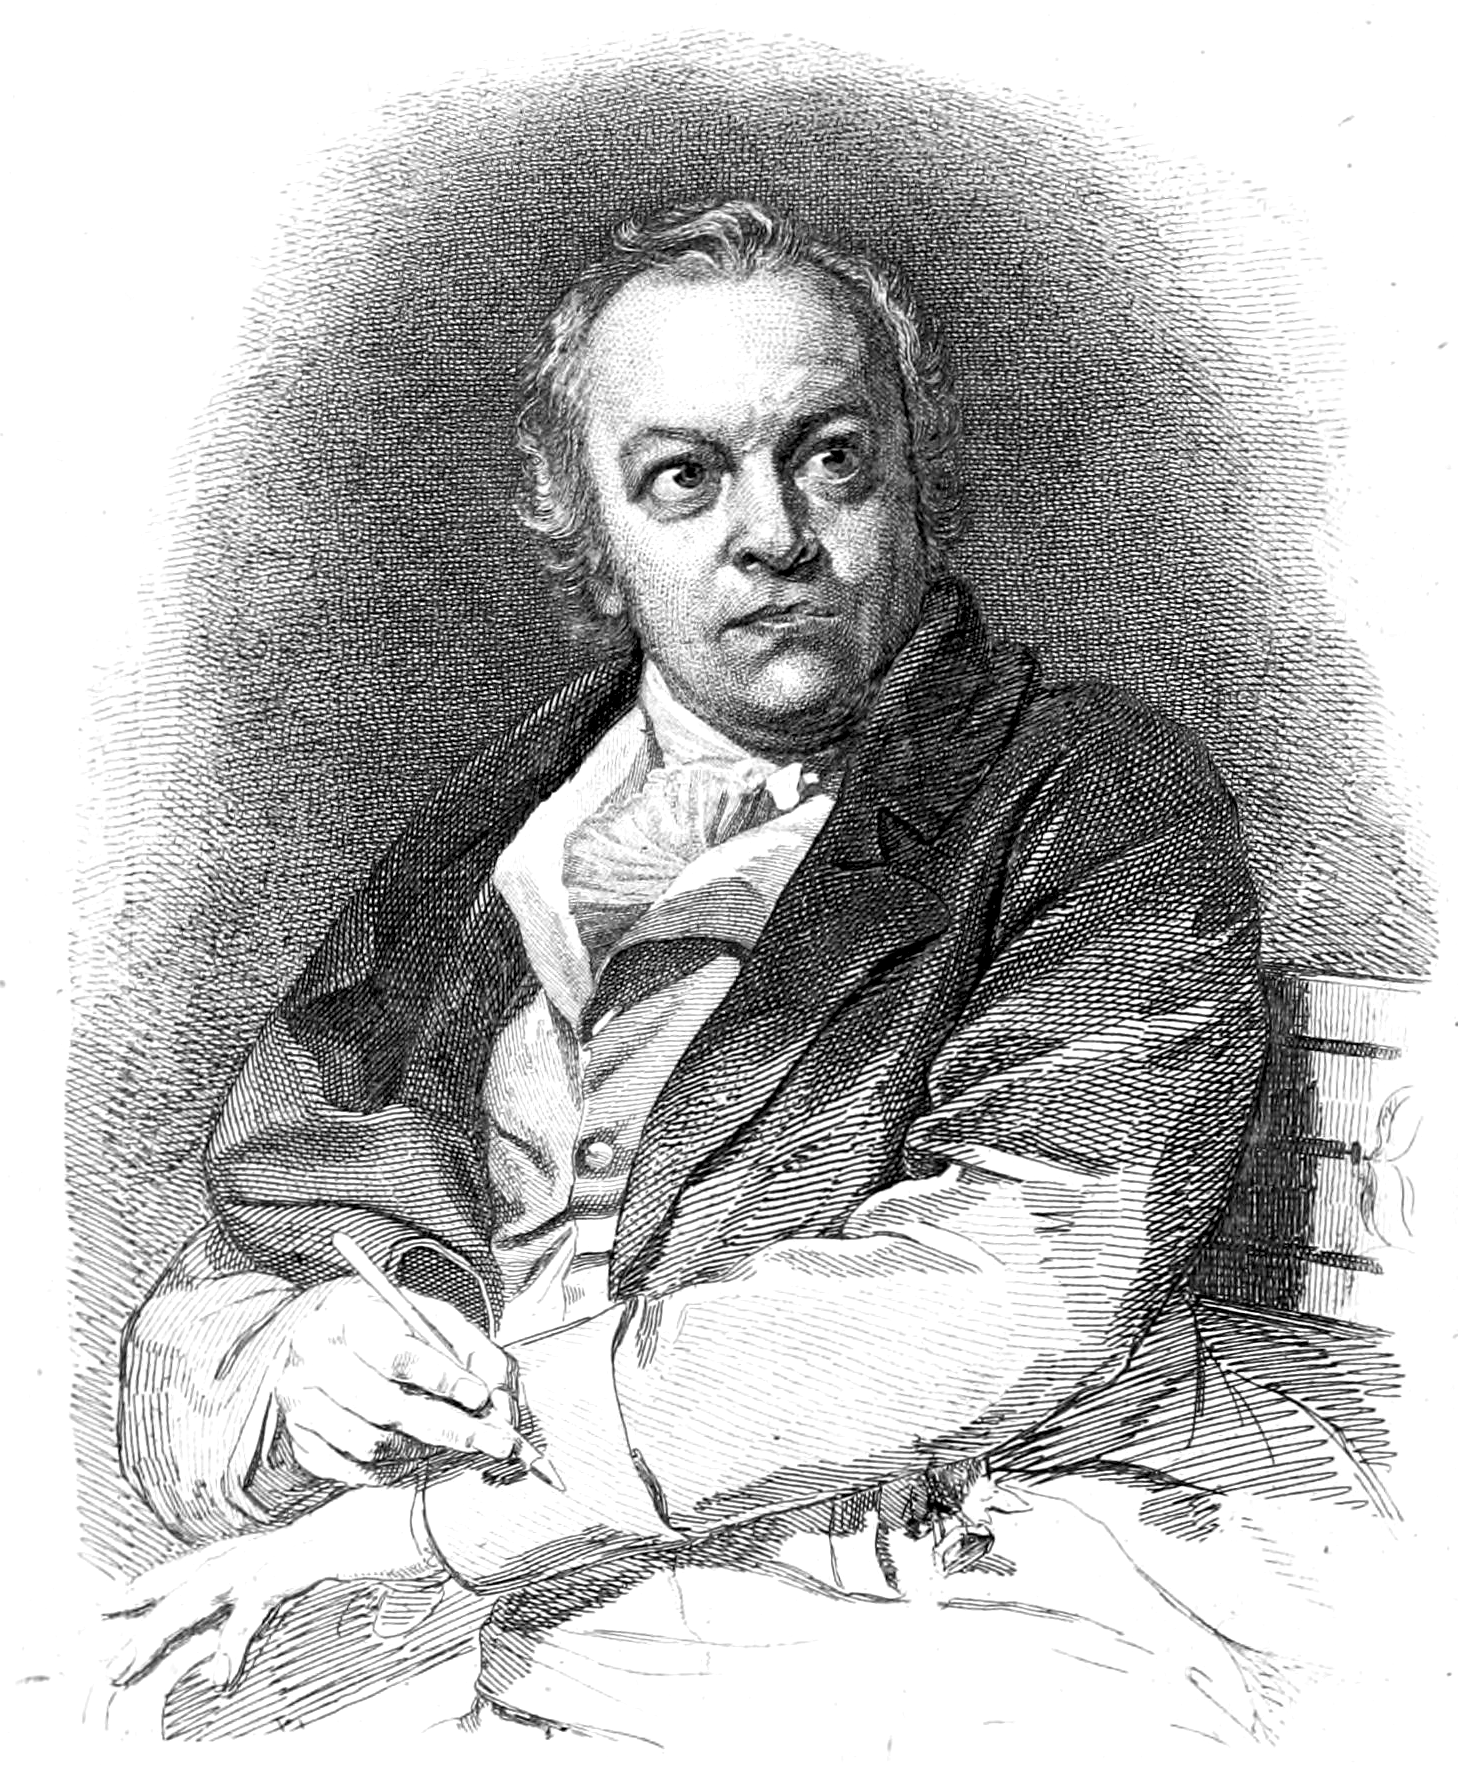 the life and works of william blake an english poet William blake was a 19th century writer and artist who is regarded as a seminal figure of the romantic age his writings have influenced countless writers and artists through the ages, and he has.